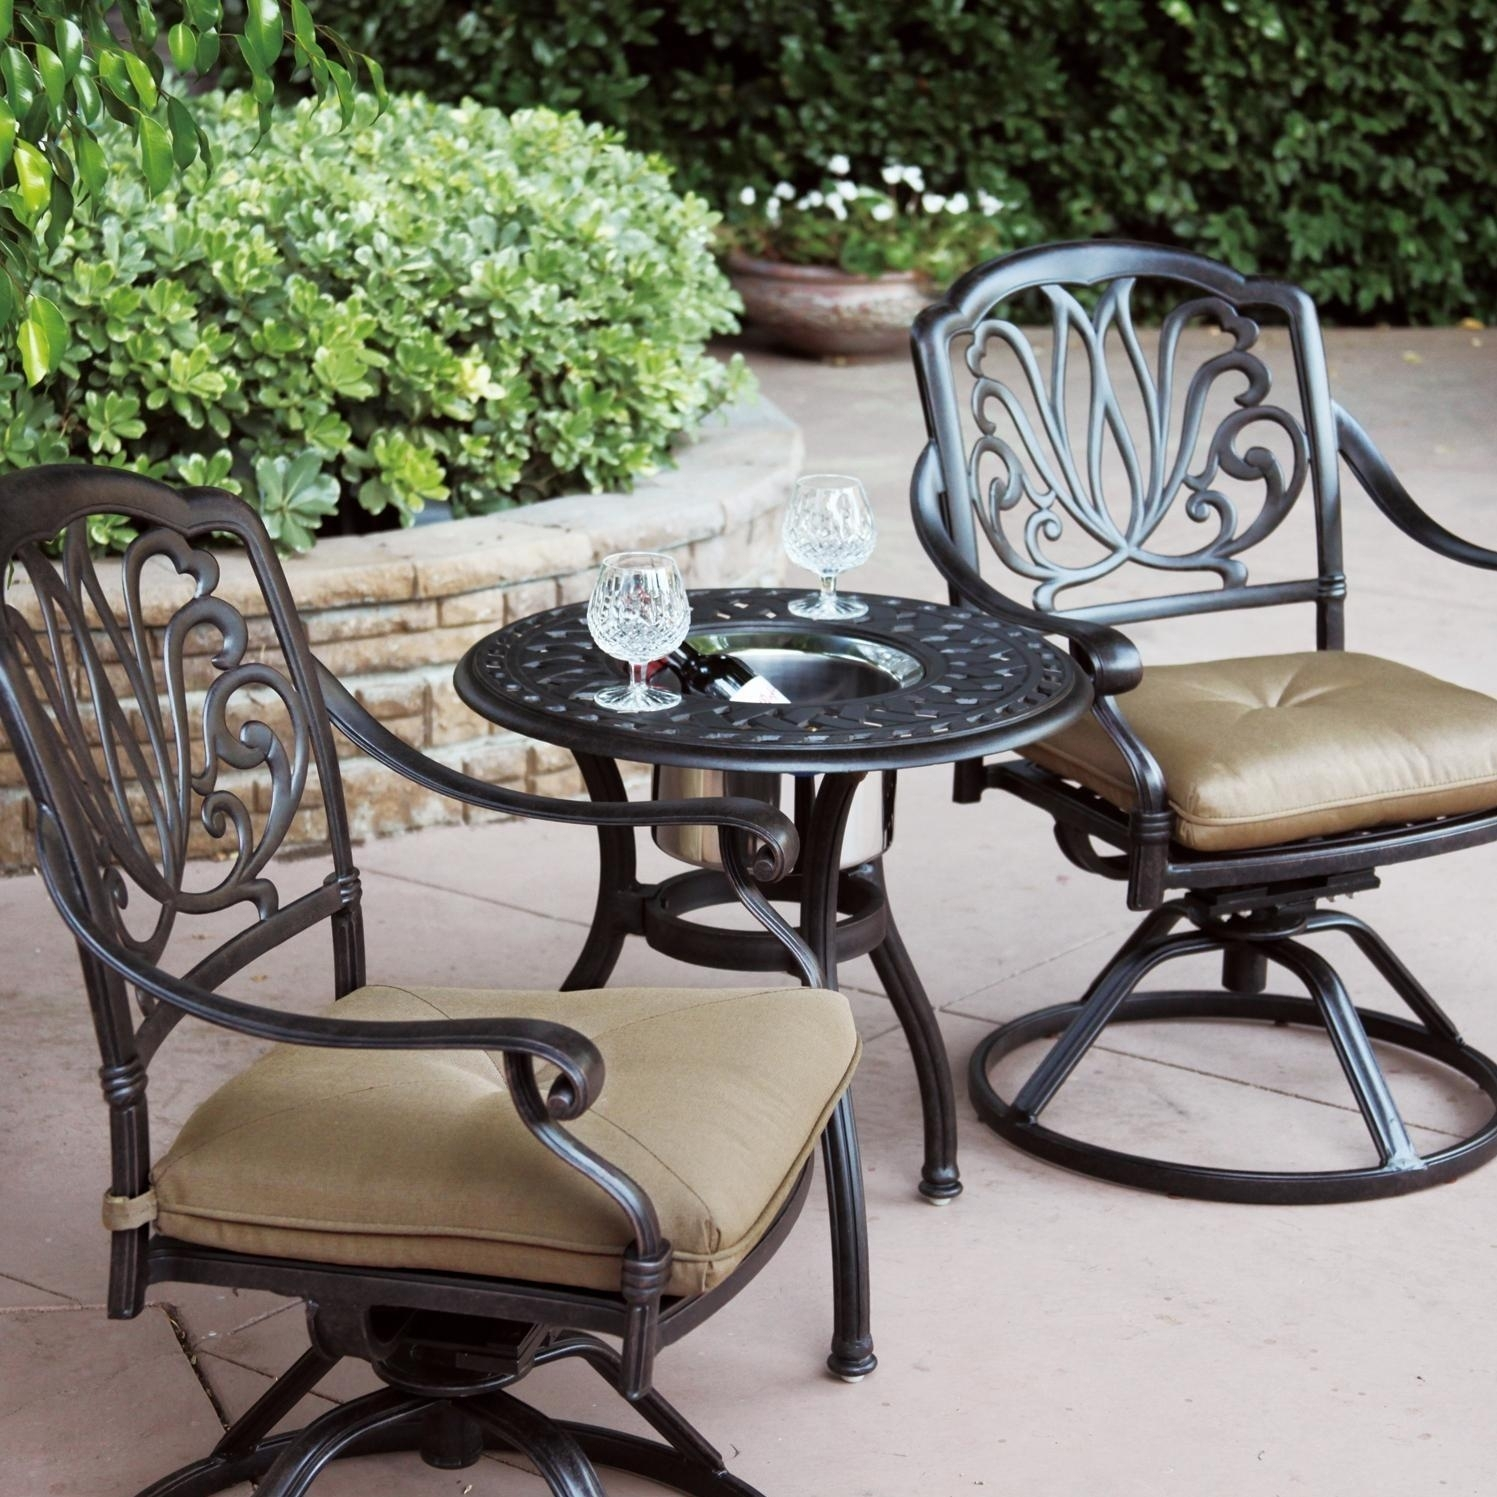 Darlee Elisabeth 3 Piece Cast Aluminum Patio Bistro Set Inside Wrought Iron Patio Rocking Chairs (View 3 of 15)